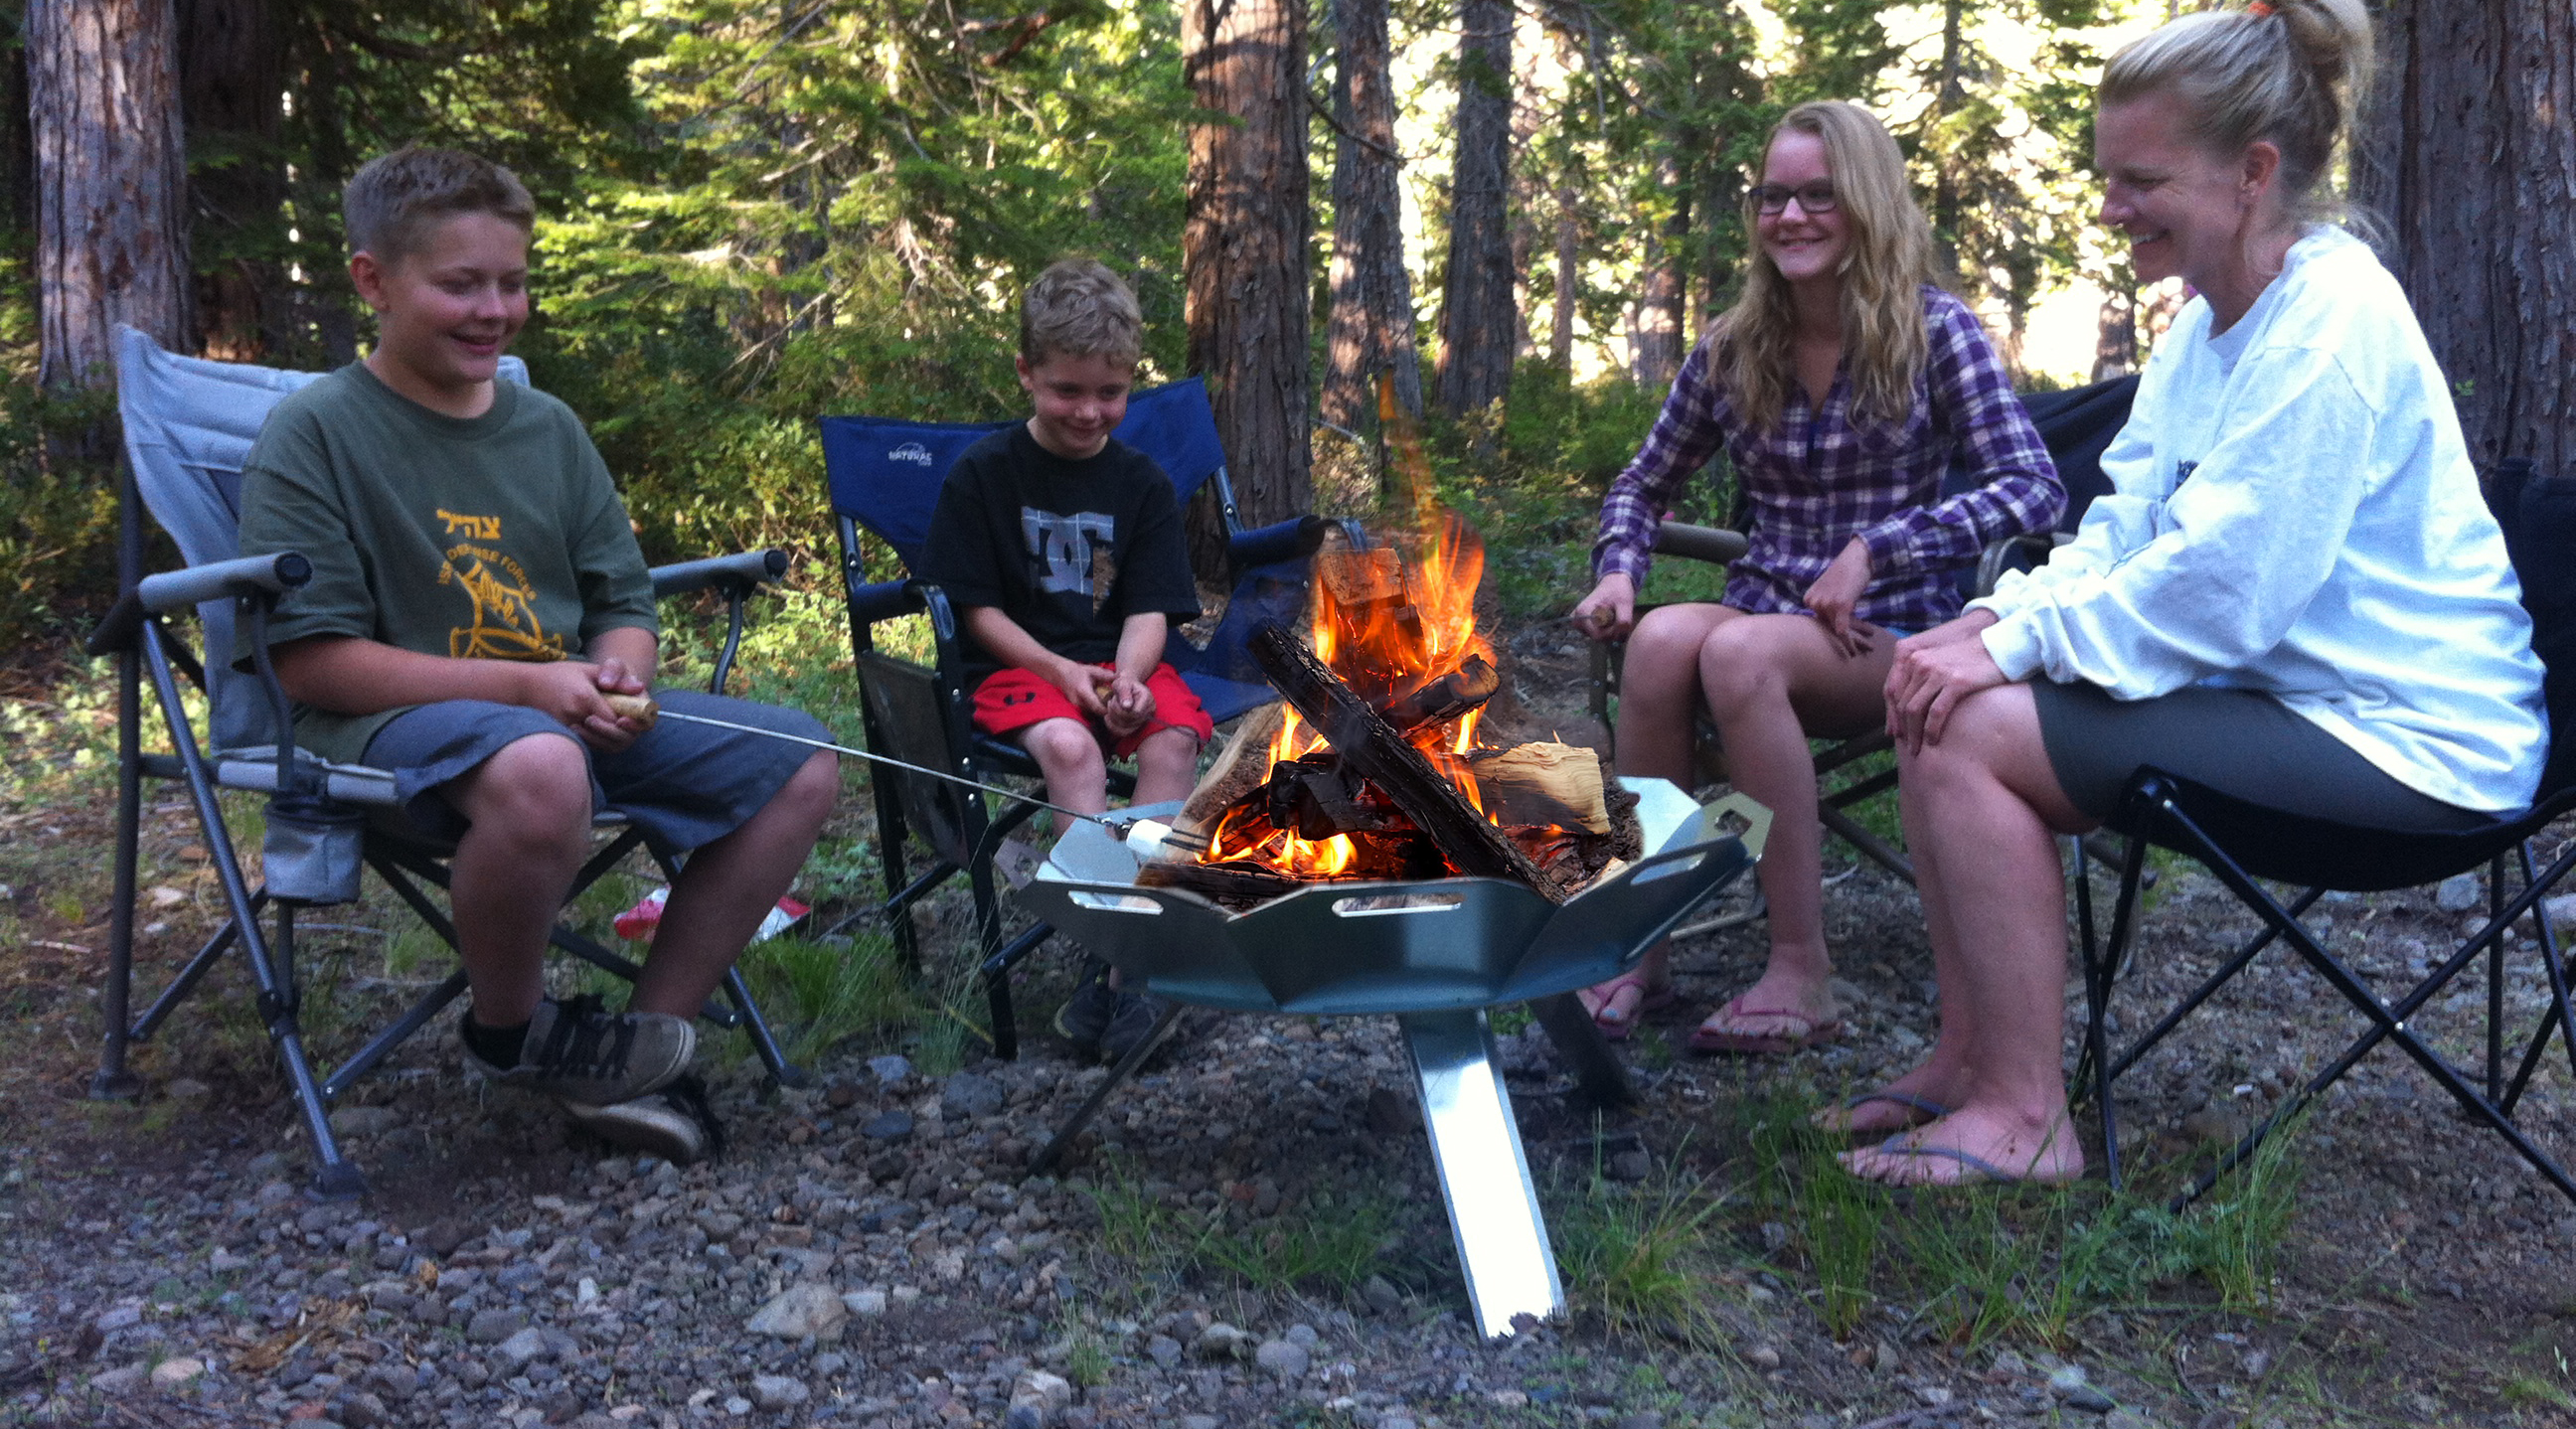 portable fire pit perfect for burning man backyard or camping